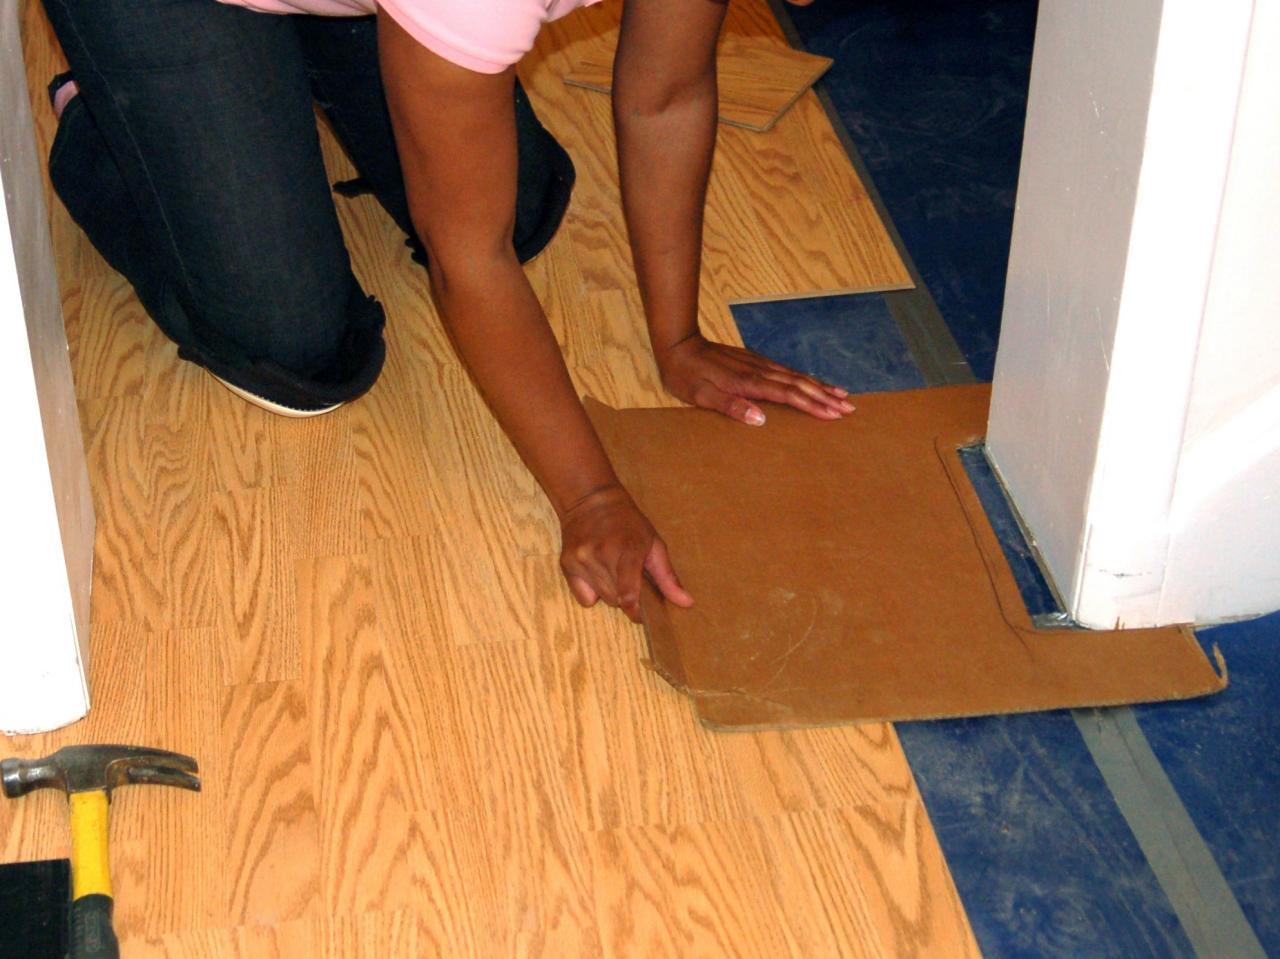 How To Install A Laminate Floating Floor Howtos DIY - What do i put under laminate flooring